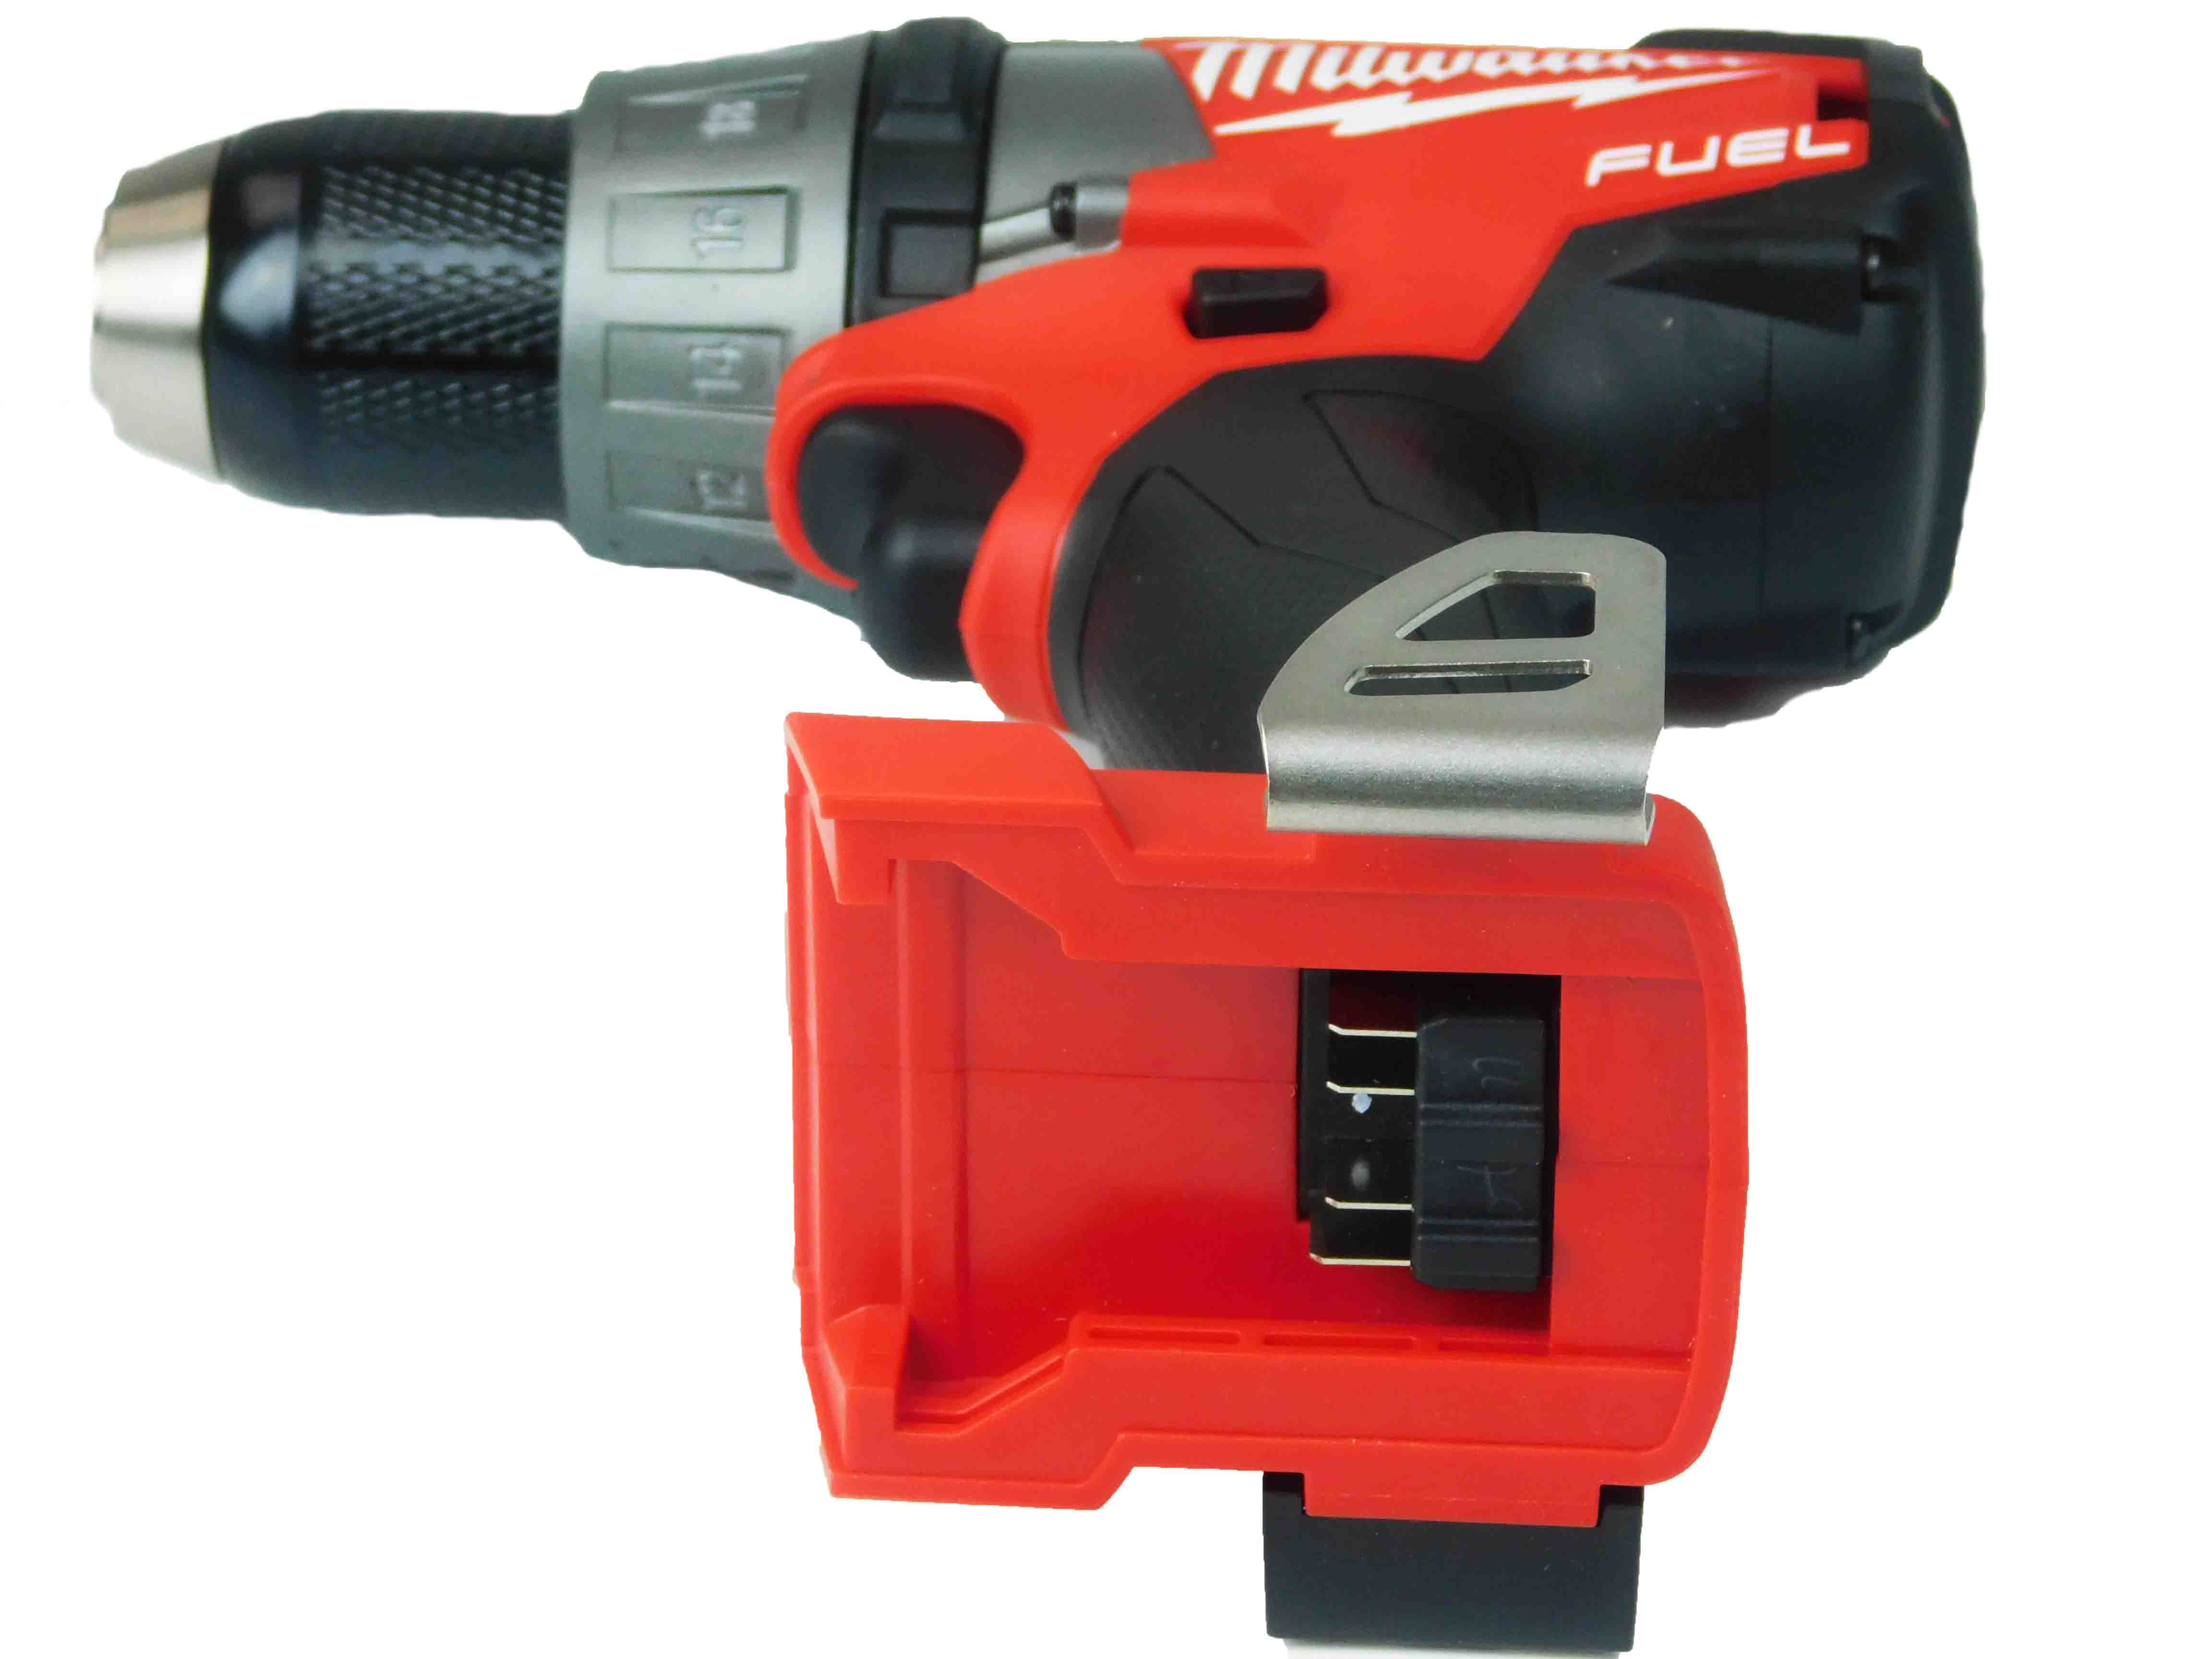 Milwaukee-2703-20-M18-Compact-1-2-Drill-Driver-Bare-Tool-image-2